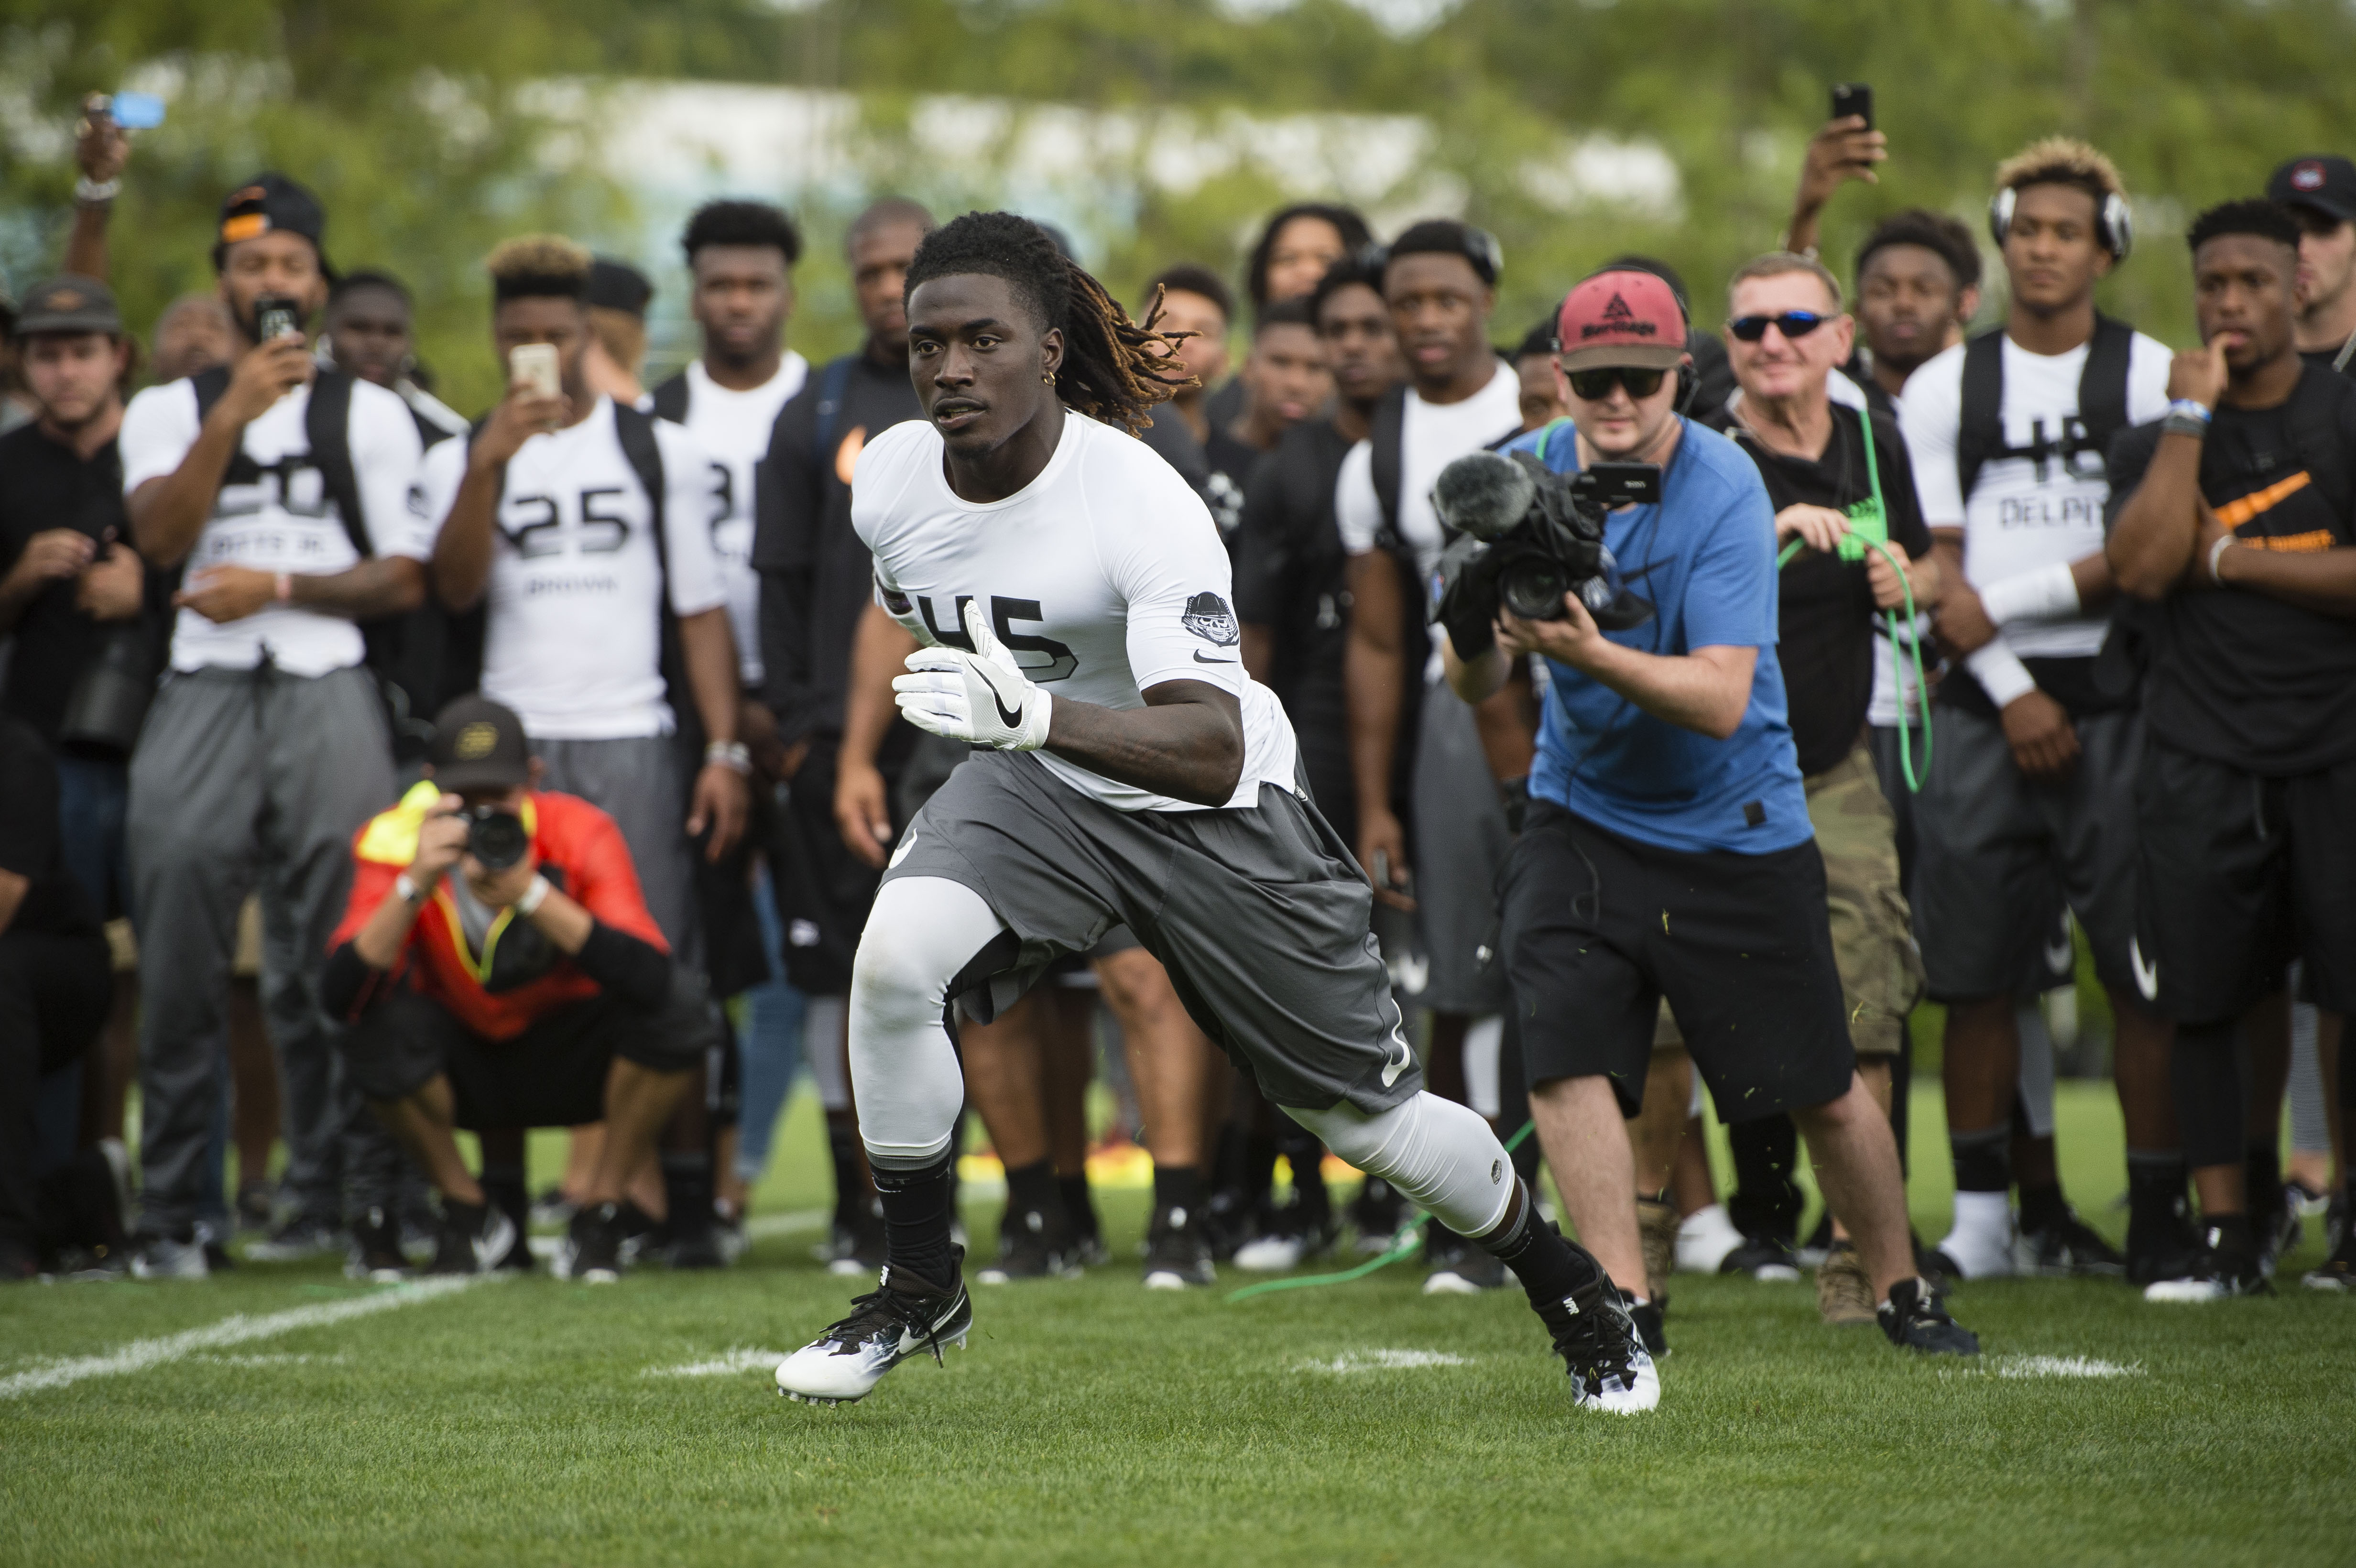 July 8, 2016 -- Beaverton, OR, U.S.A -- Linebacker Dylan Moses of IMG Academy (Florida) competes in a one on one competition at The Opening and Elite 11 high school football camp held at Nike headquarters in Oregon. -- Photo by Troy Wayrynen-USA TODAY Sports Images, Gannett ORG XMIT: US 135130 opening/ elite 1 7/6/ [Via MerlinFTP Drop]